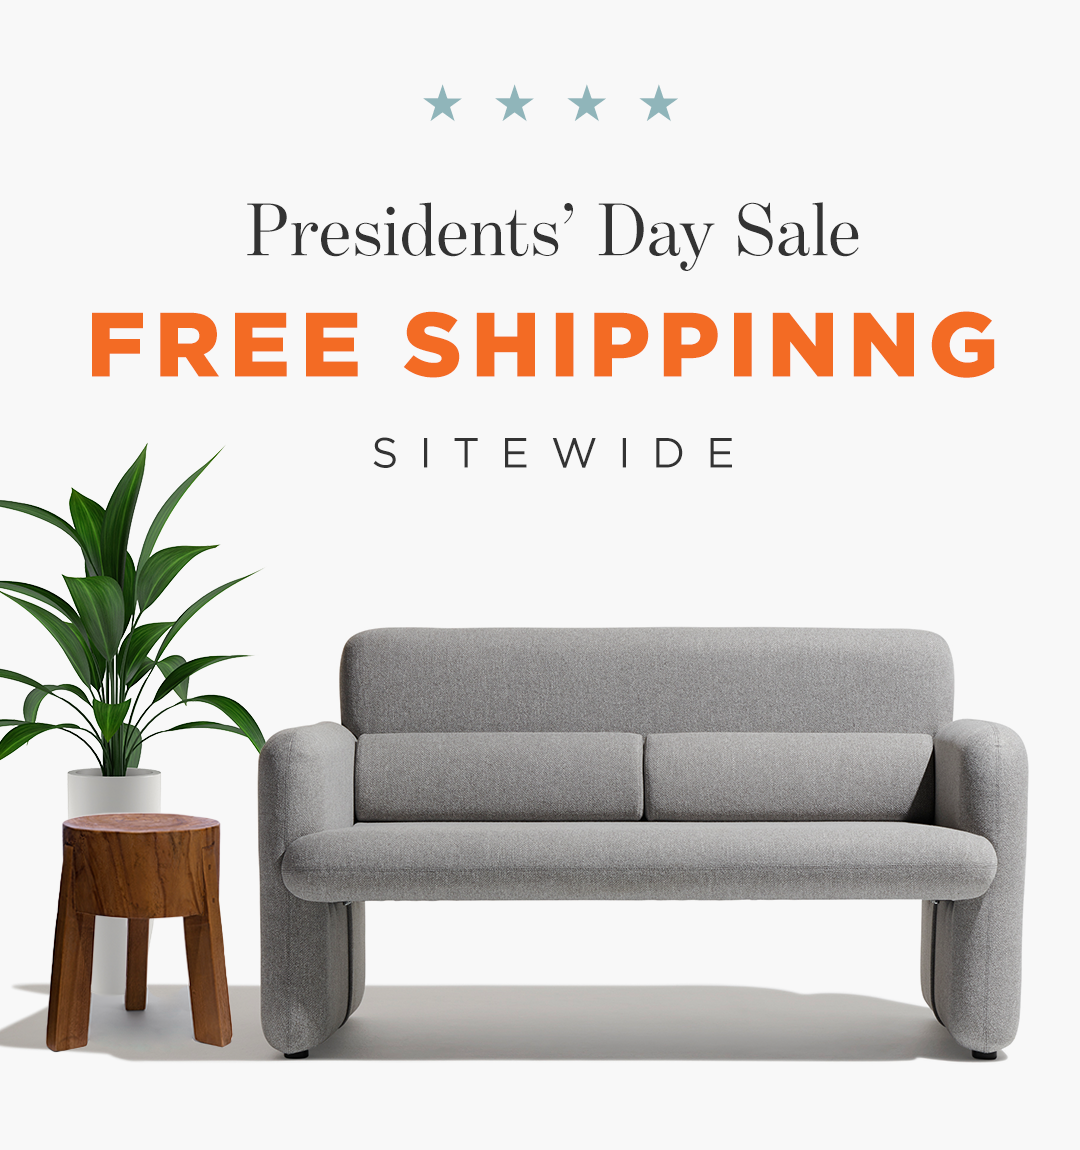 Presidents' Day Sale / Free Shipping